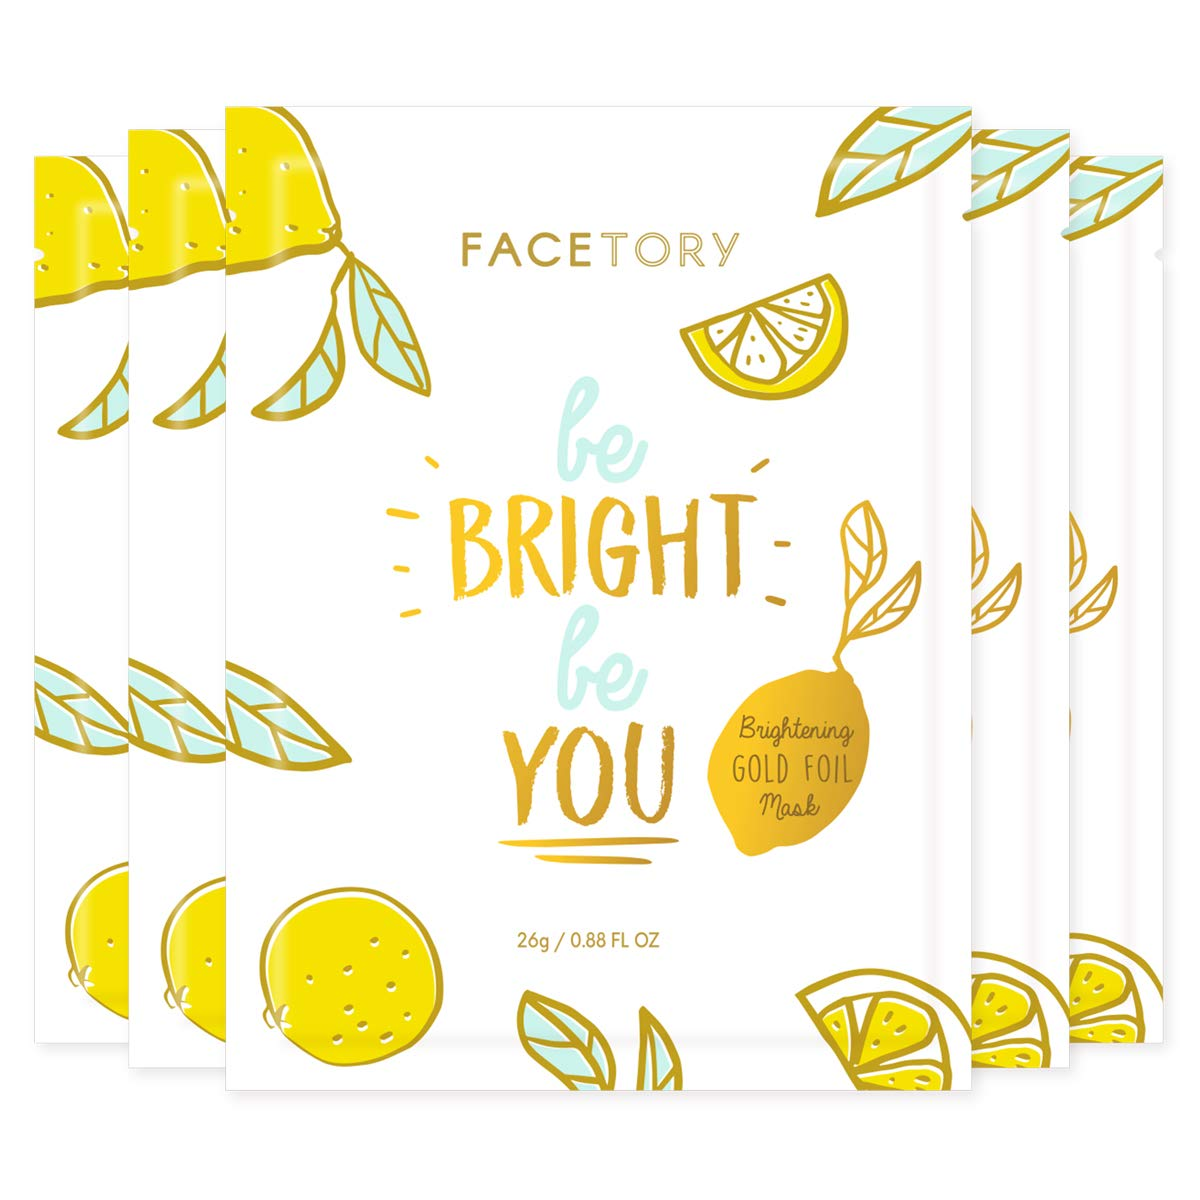 FaceTory Be Bright Be You Vitamin C Brightening Foil Mask - Moisturizing, Revitalizing, and Brightening (Pack of 5)